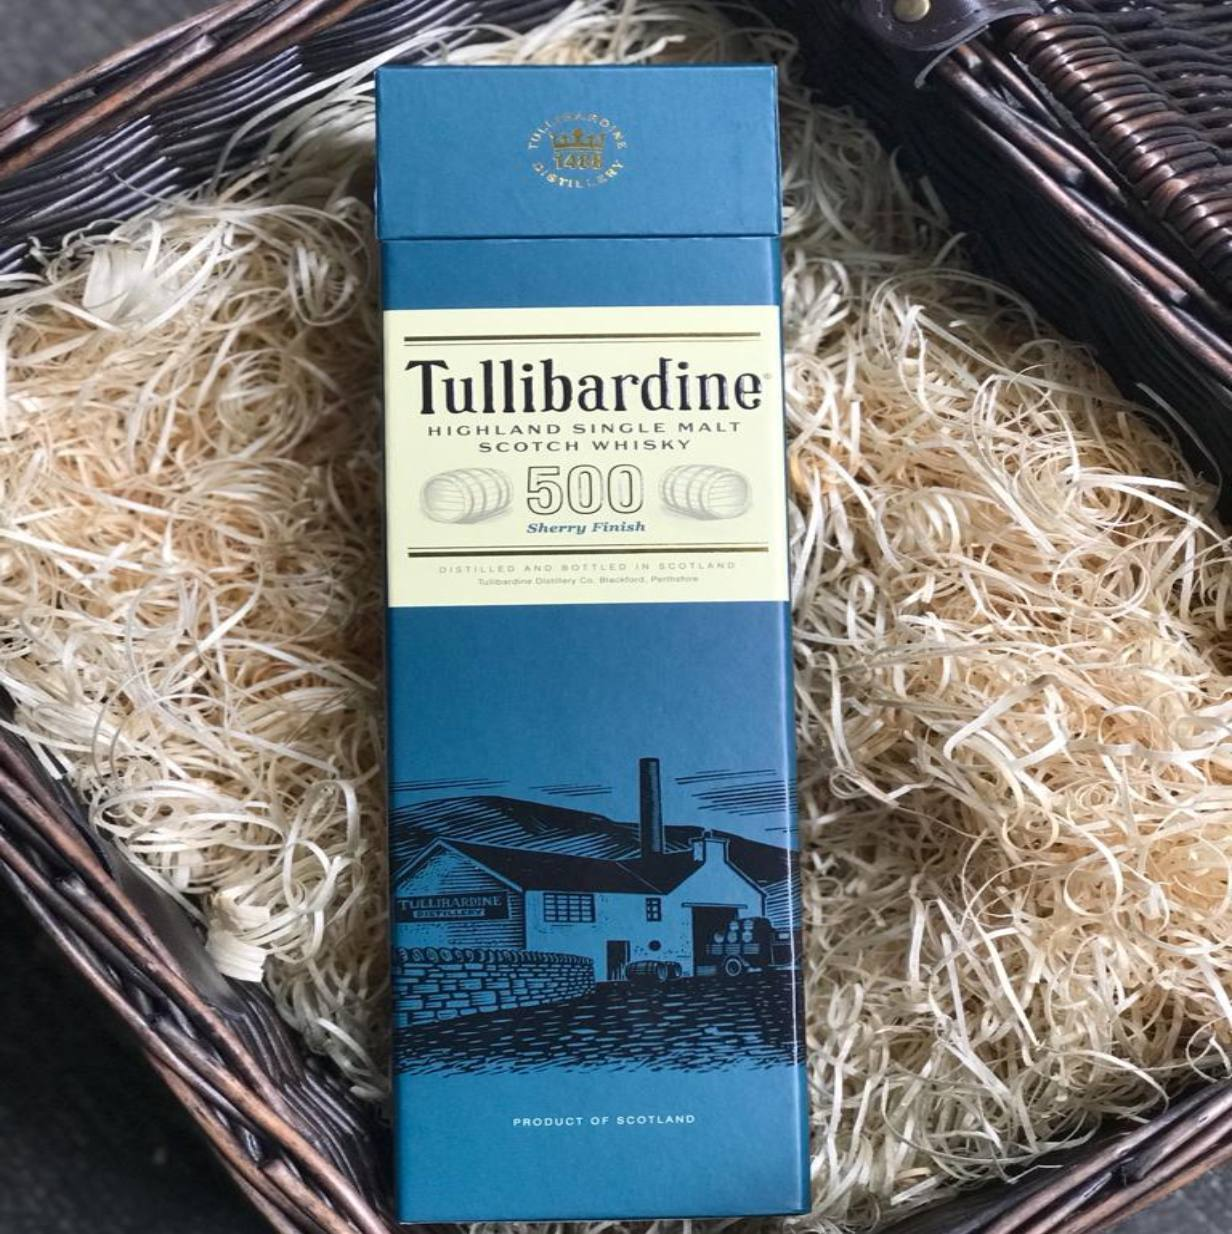 Tullibardine Sherry Finish Highland Single Malt Scotch Whisky - HawksheadBrewery